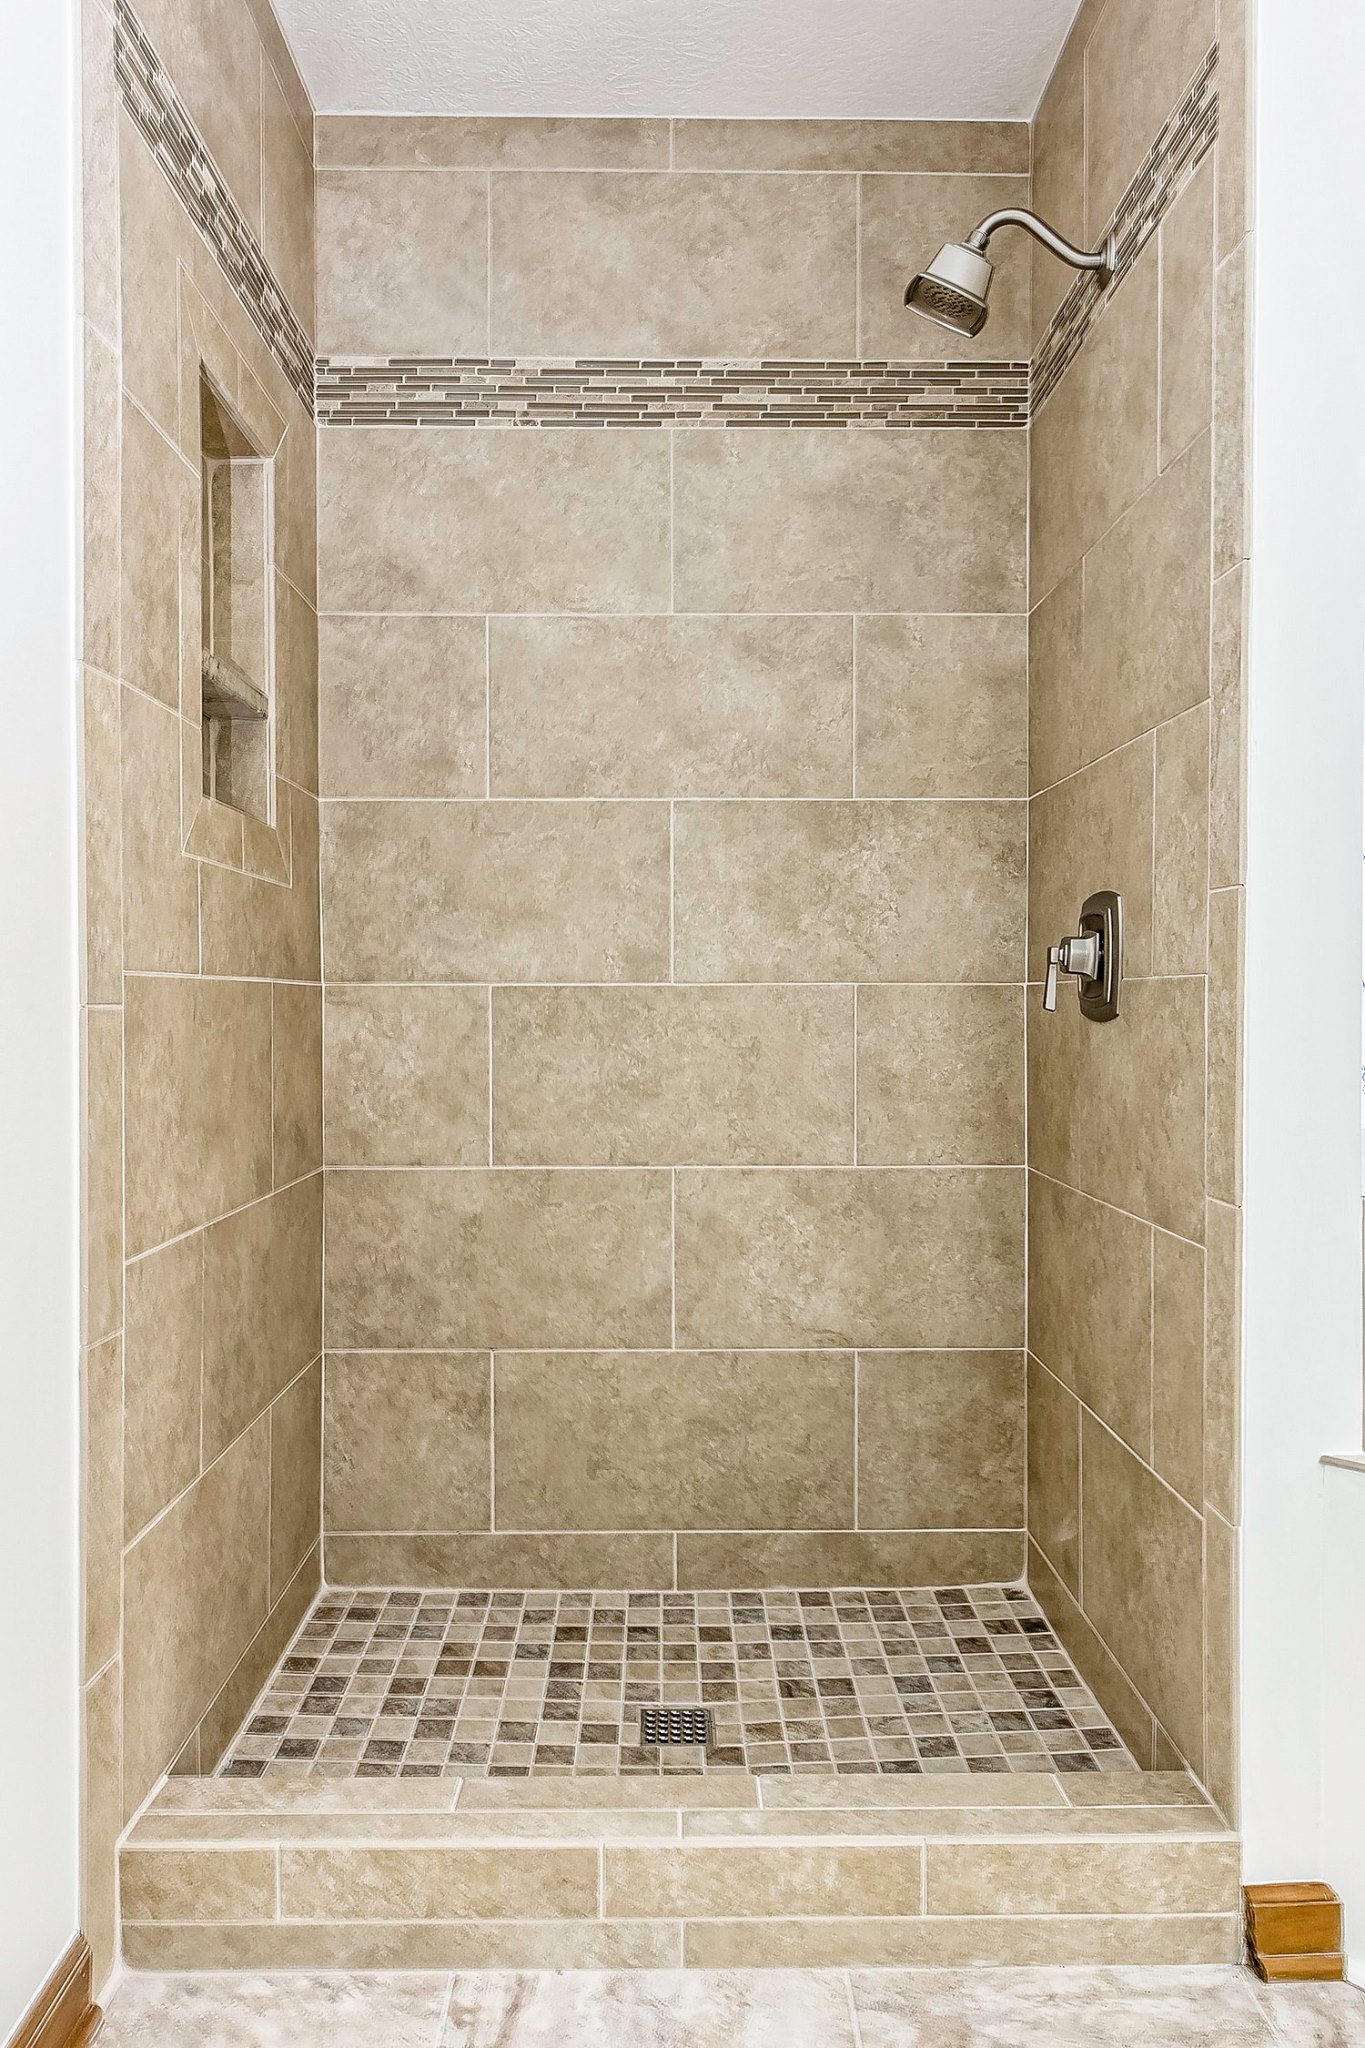 Make Your Shower Great Again Ohio Property Brothers - I need a new bathroom